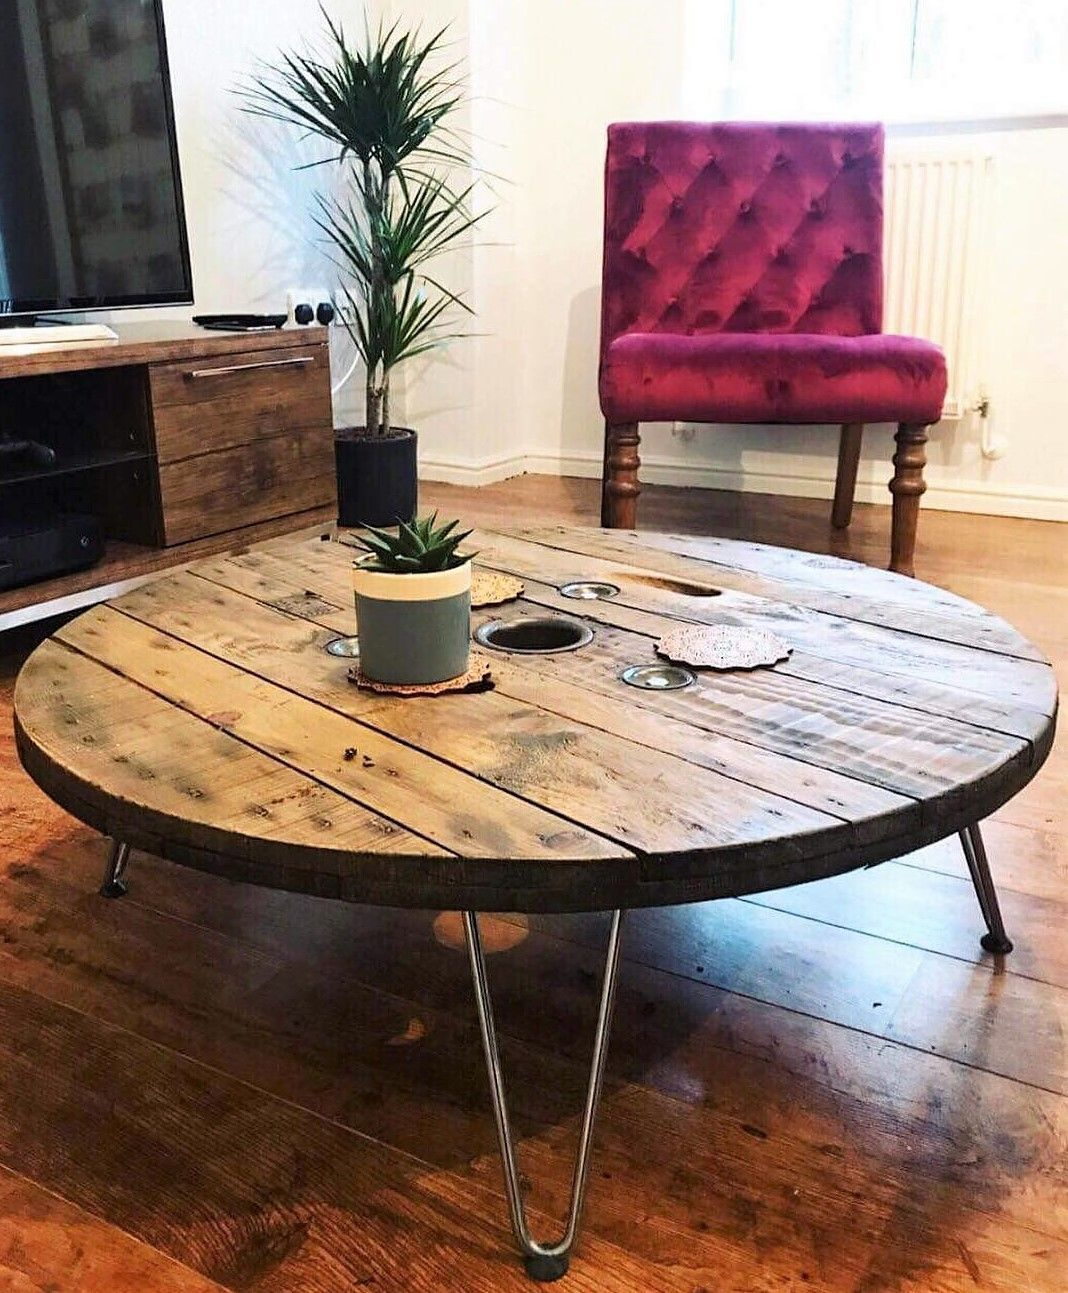 reclaimed pallets cable reel table #industrialdesign #cablespooltables